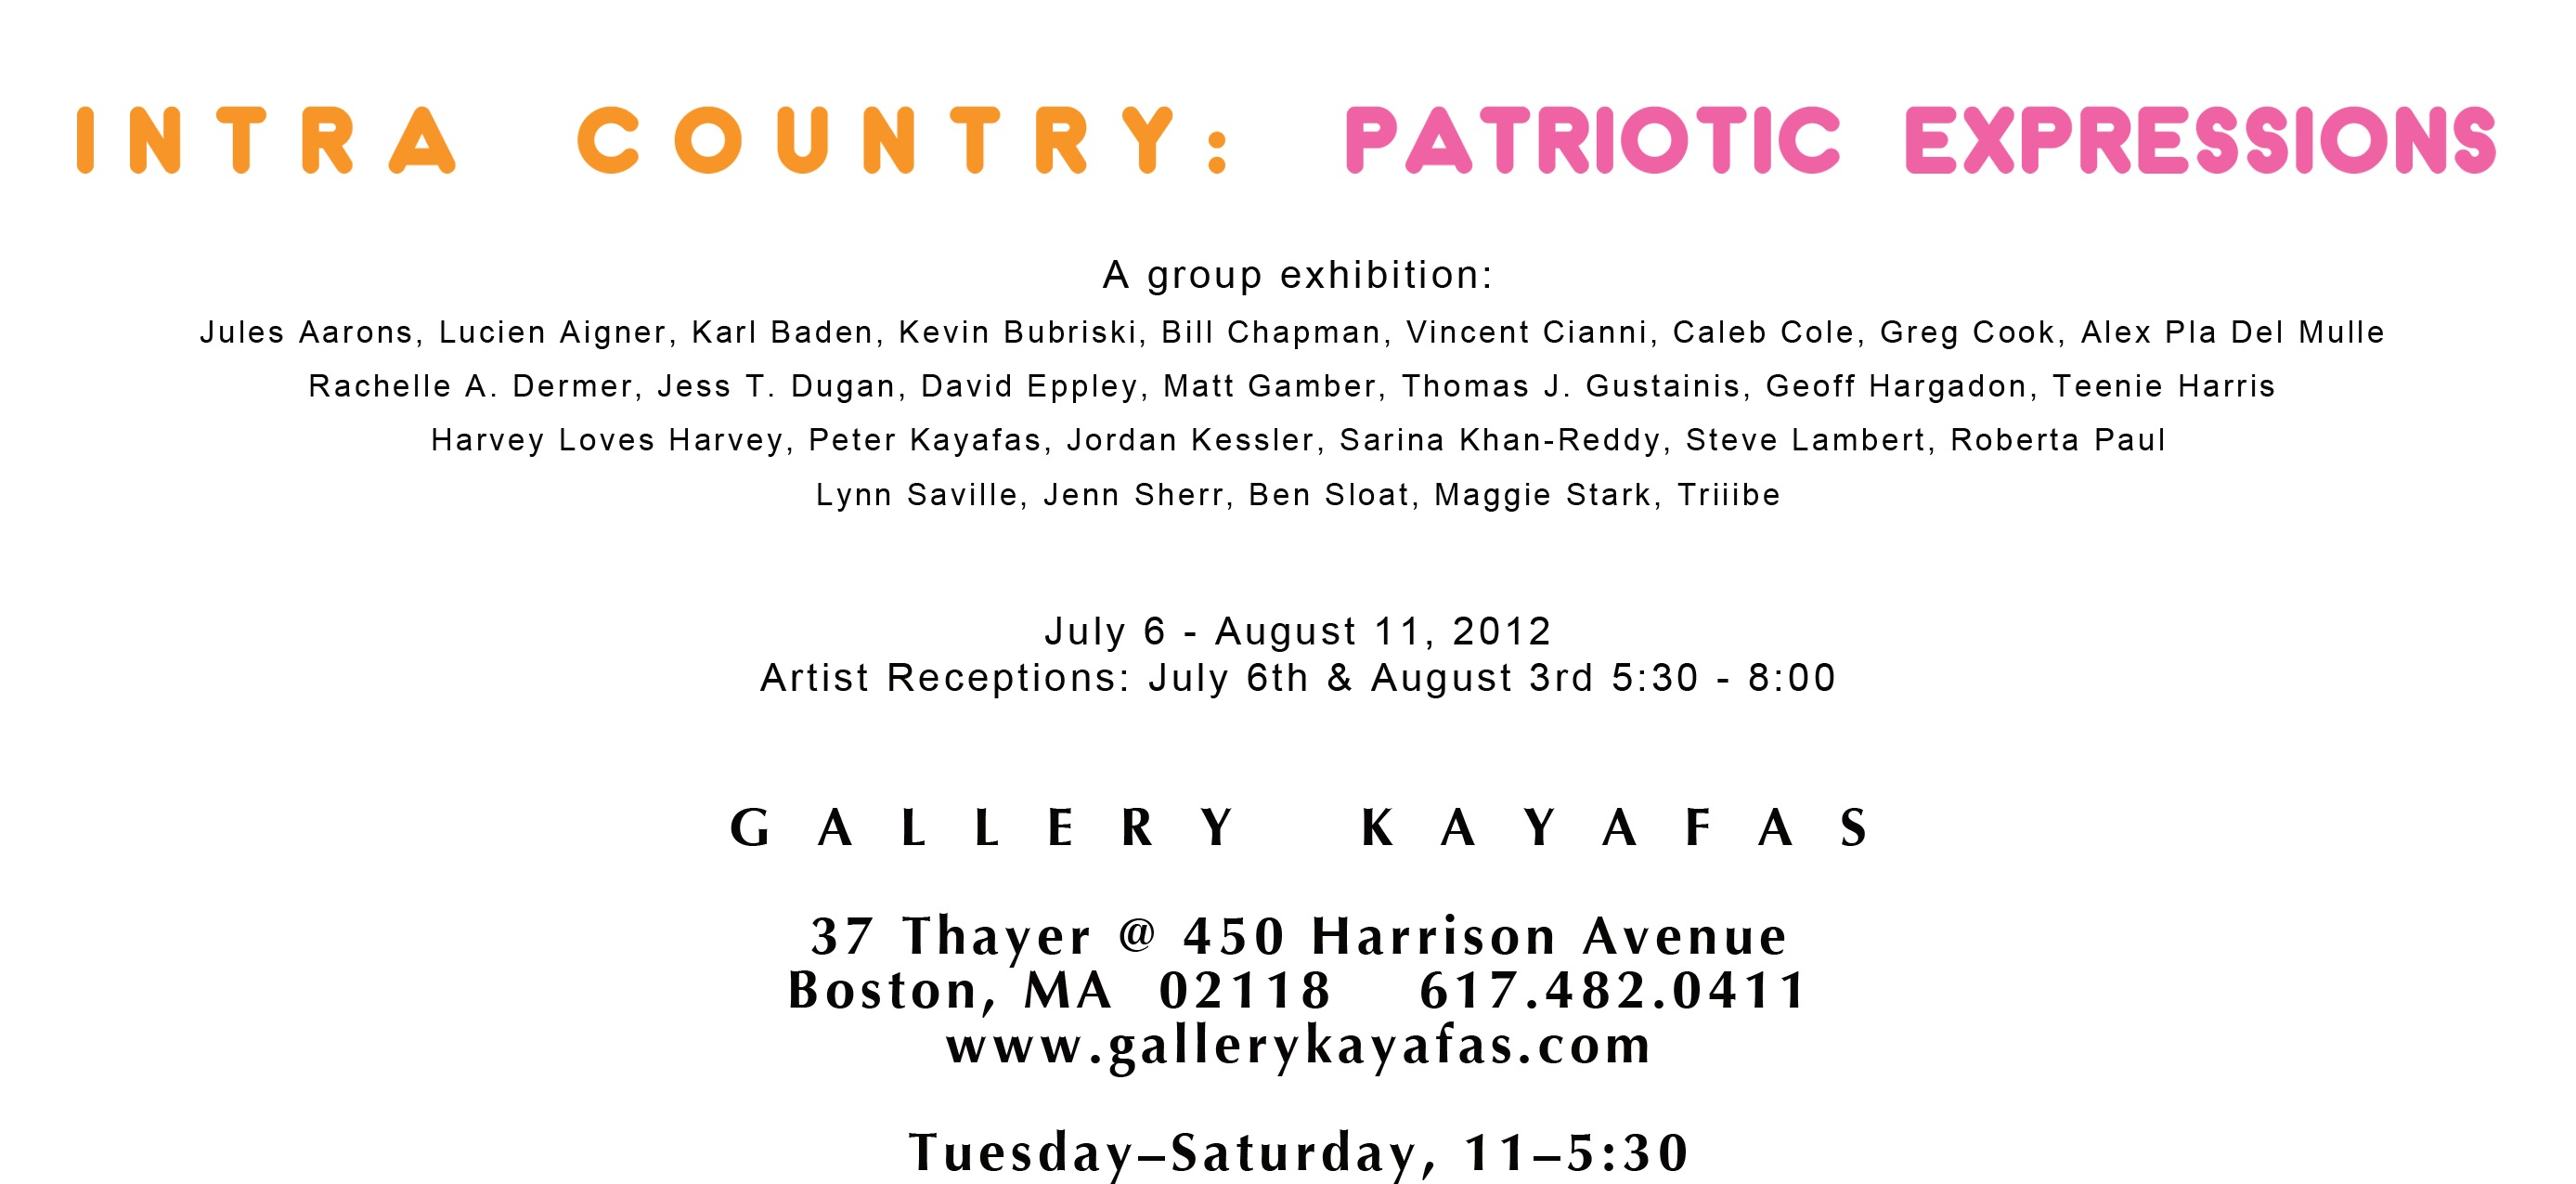 Intra Country: Patriotic Expressions at Gallery Kayafas